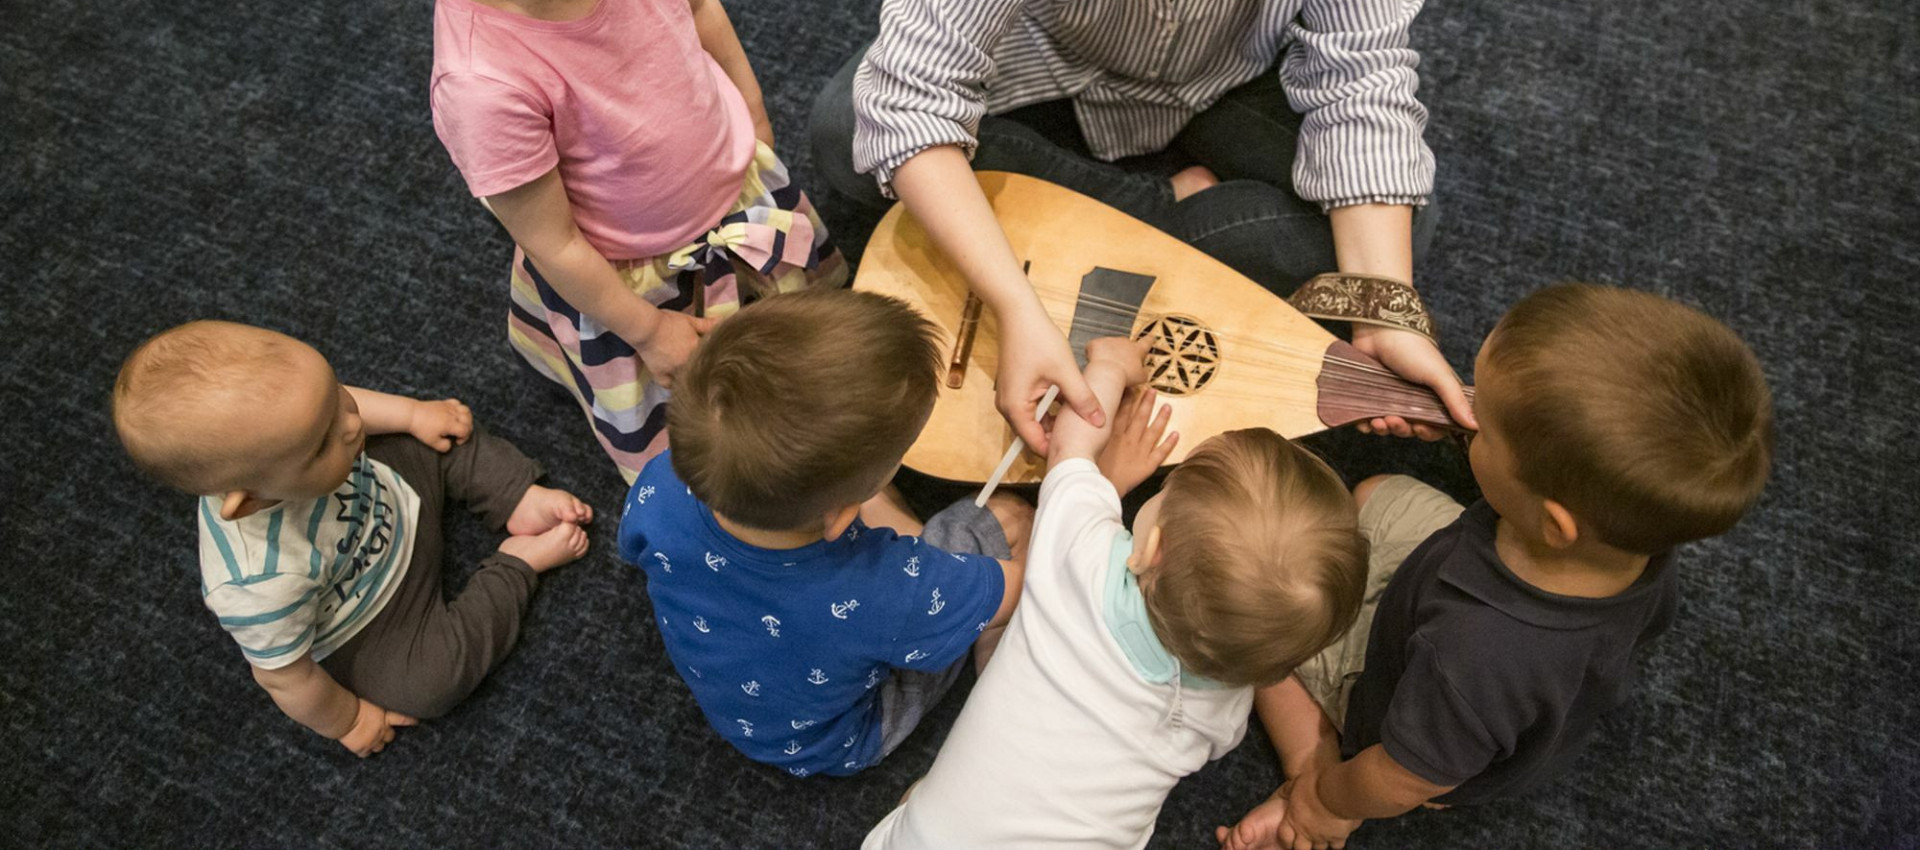 Sing-along baby - musical activities for small children